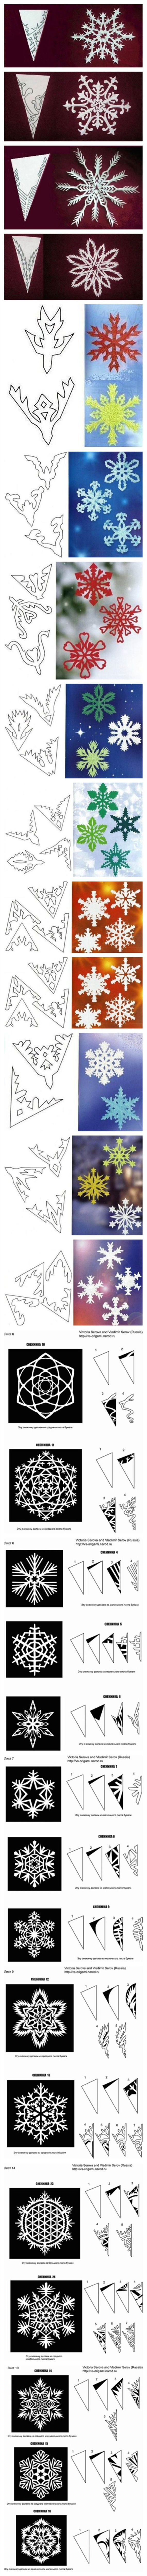 Patterns for cutting snowflakes.